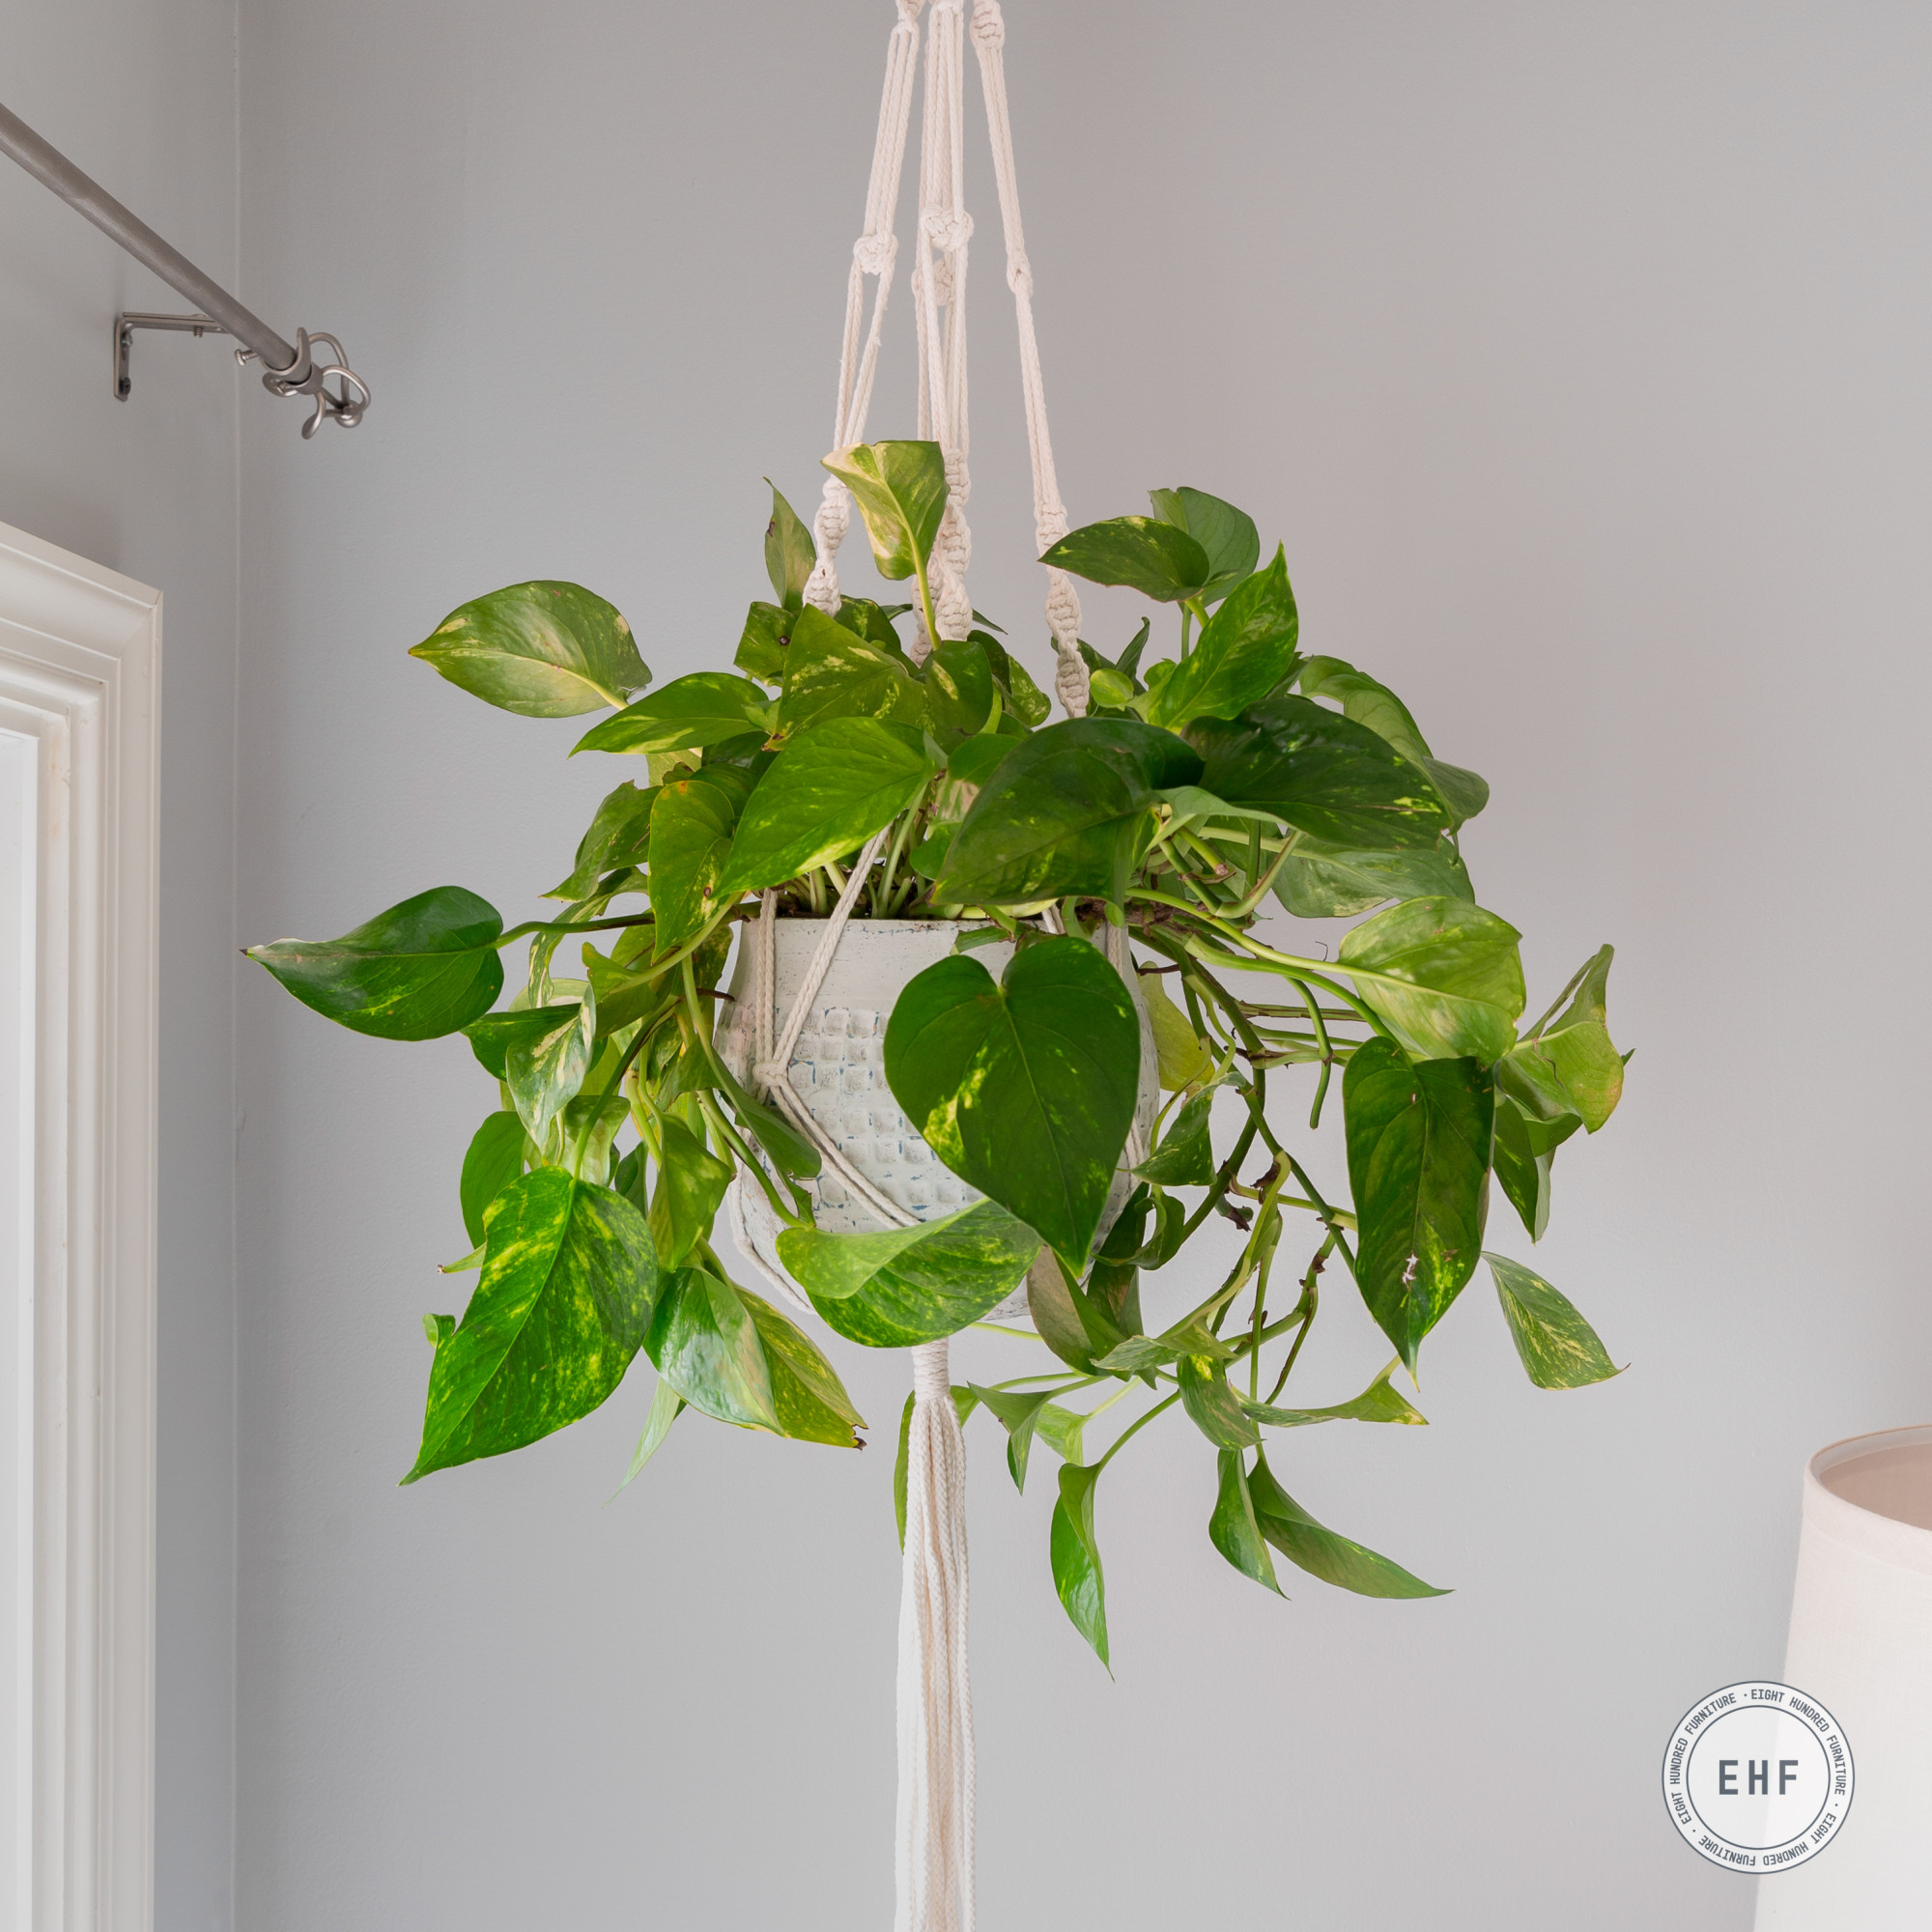 Macrame plant hanger with ceramic pot painted in Miss Mustard Seed's Milk Paint in the color Mora by Eight Hundred Furniture